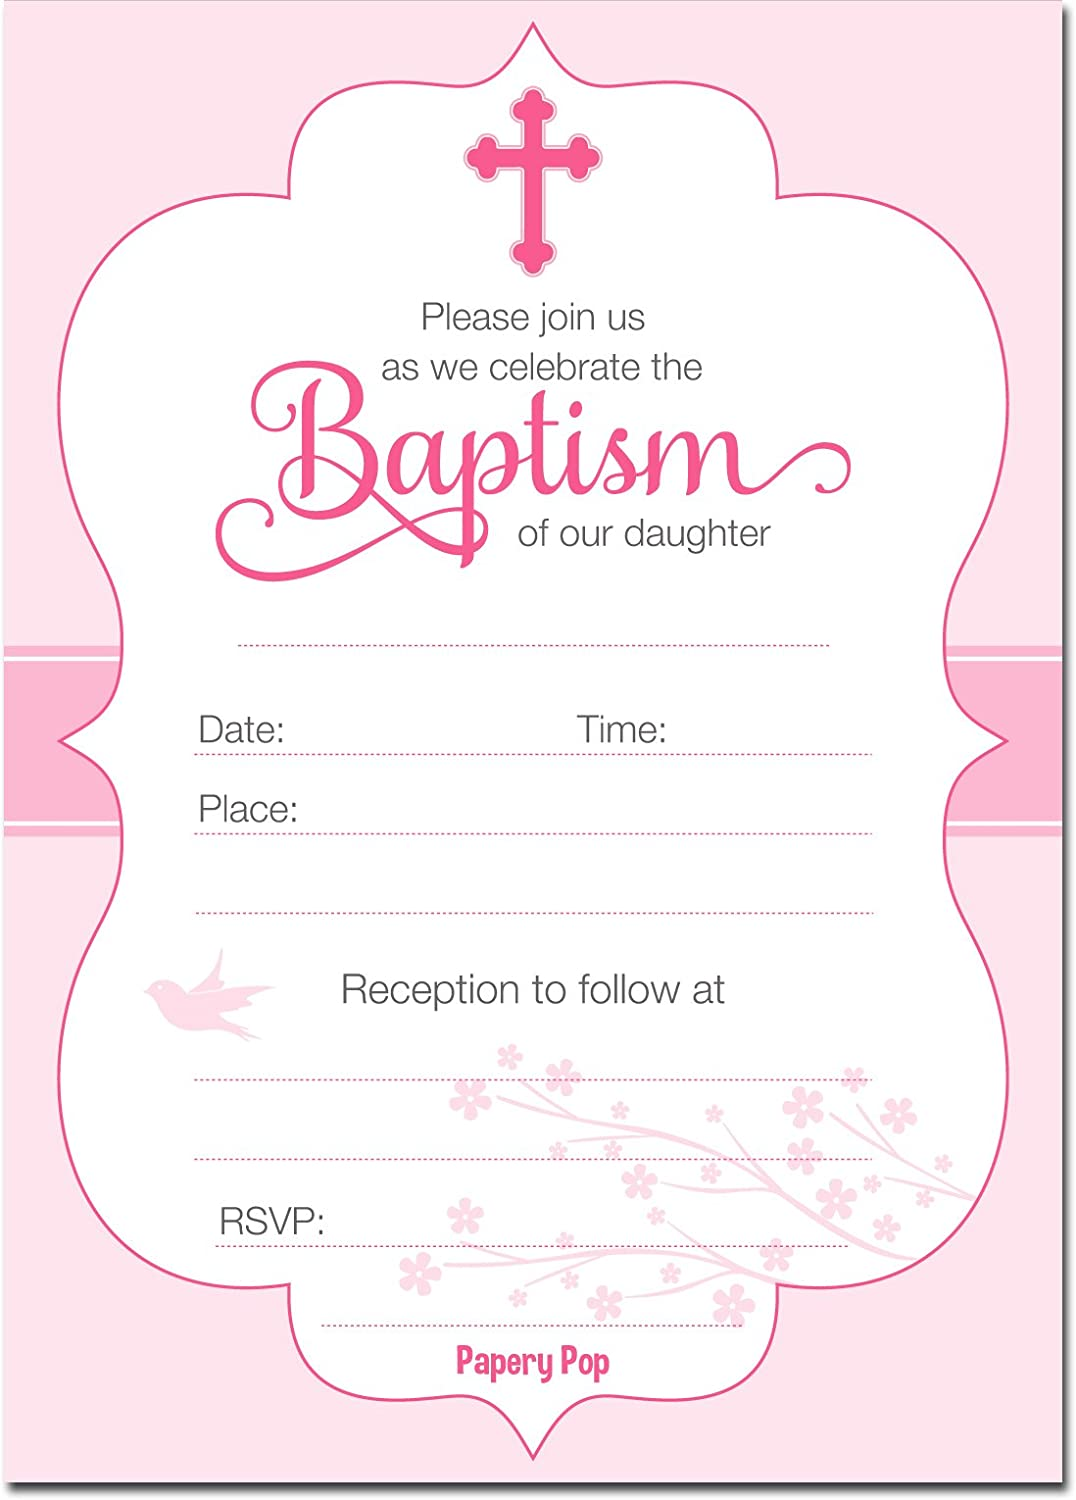 30 Baptism Invitations Girl with Envelopes (30 Pack) - Religious Christening Celebration Invites - Fill in Style Papery Pop